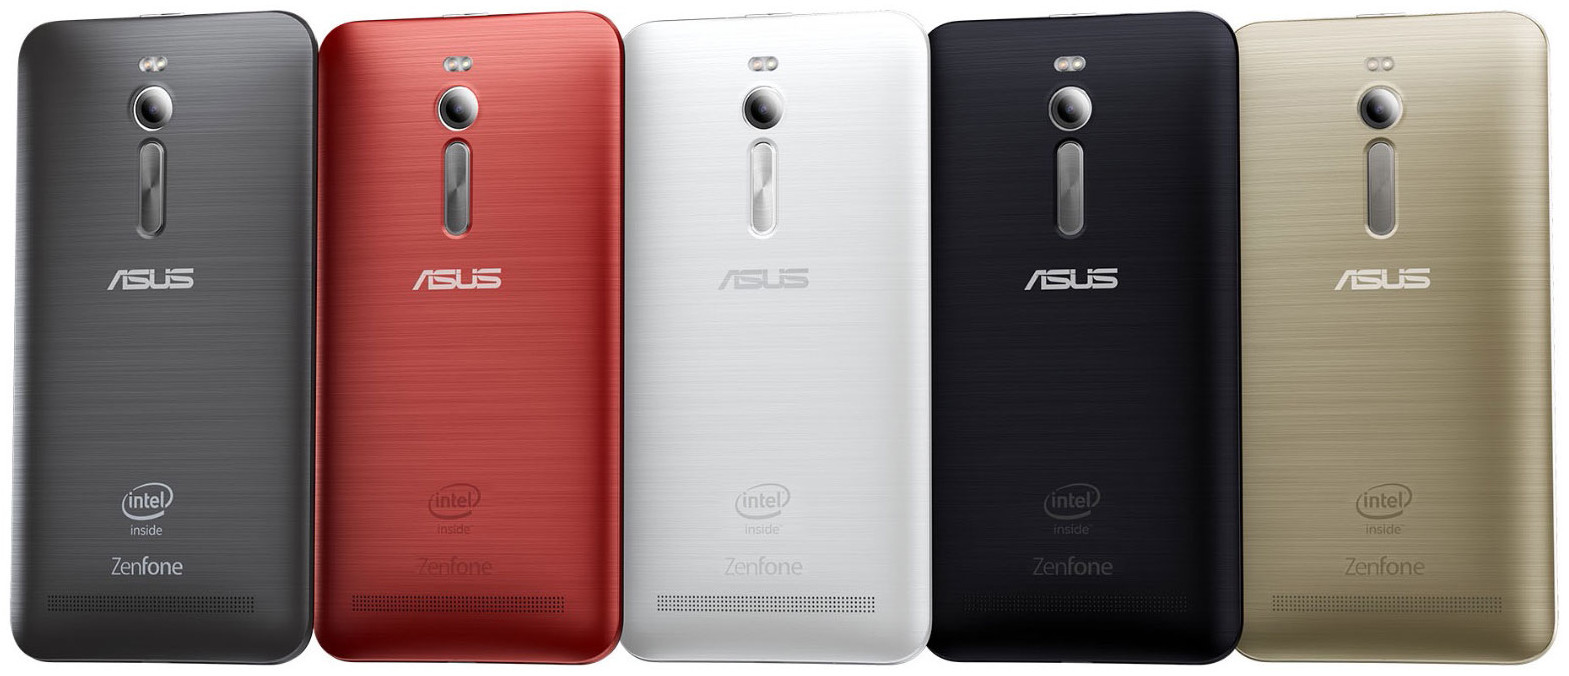 Asus Zenfone 2 Ze551ml Taiwan 16gb 4gb Ram Specs And Price Phonegg 2gb 16 World Compatibility